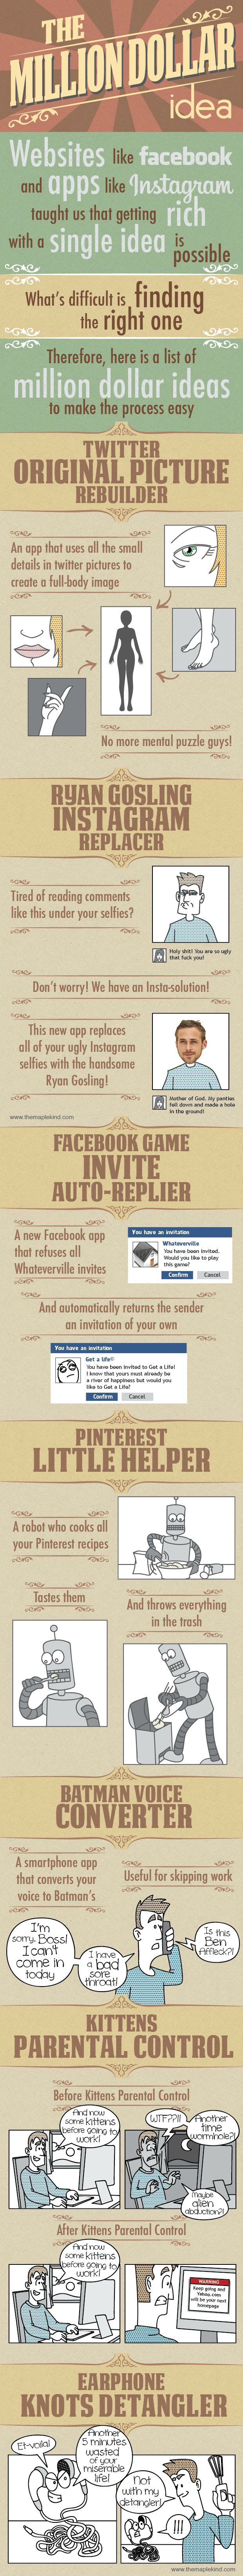 How to Get Rich for apps developer - The Million Dollar Ideas to make money - [funny #Infographic]